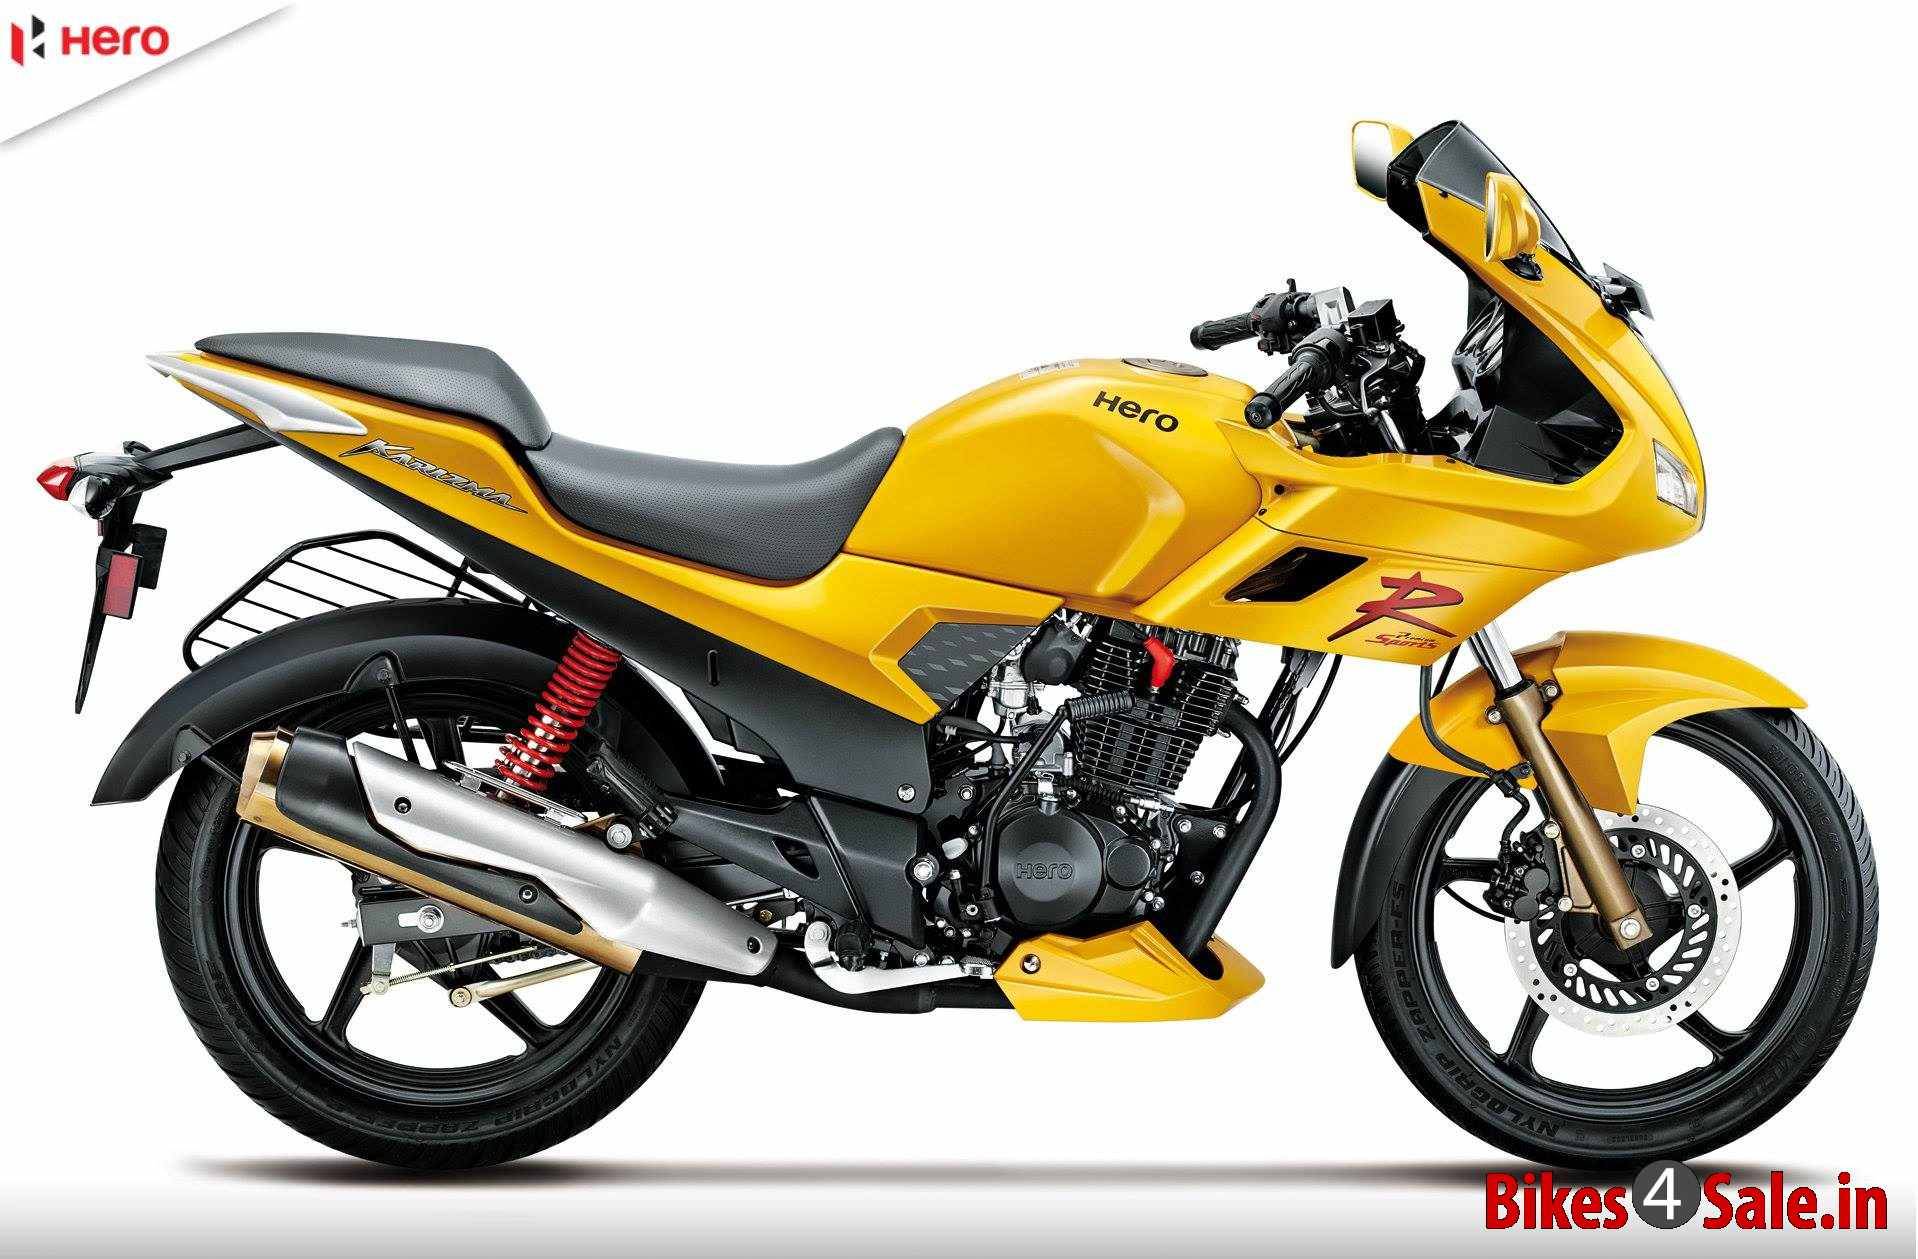 Electric Bikes For Sale >> Photo 3. Hero Karizma R Motorcycle Picture Gallery - Bikes4Sale